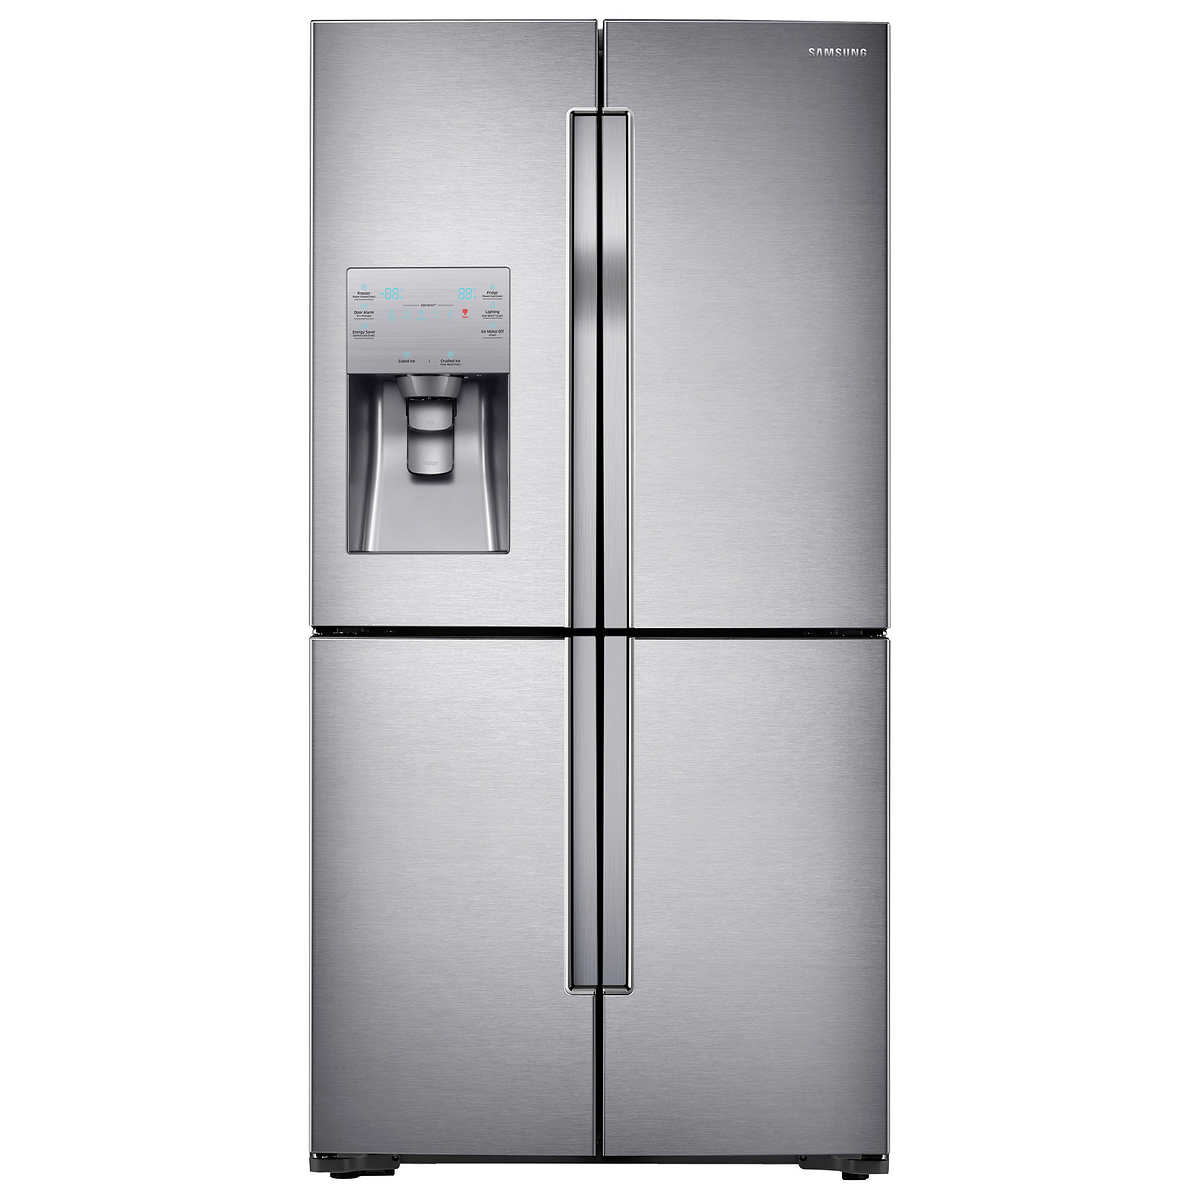 Samsung 23cuft 4 door flex counter depth refrigerator with 1 1 rubansaba